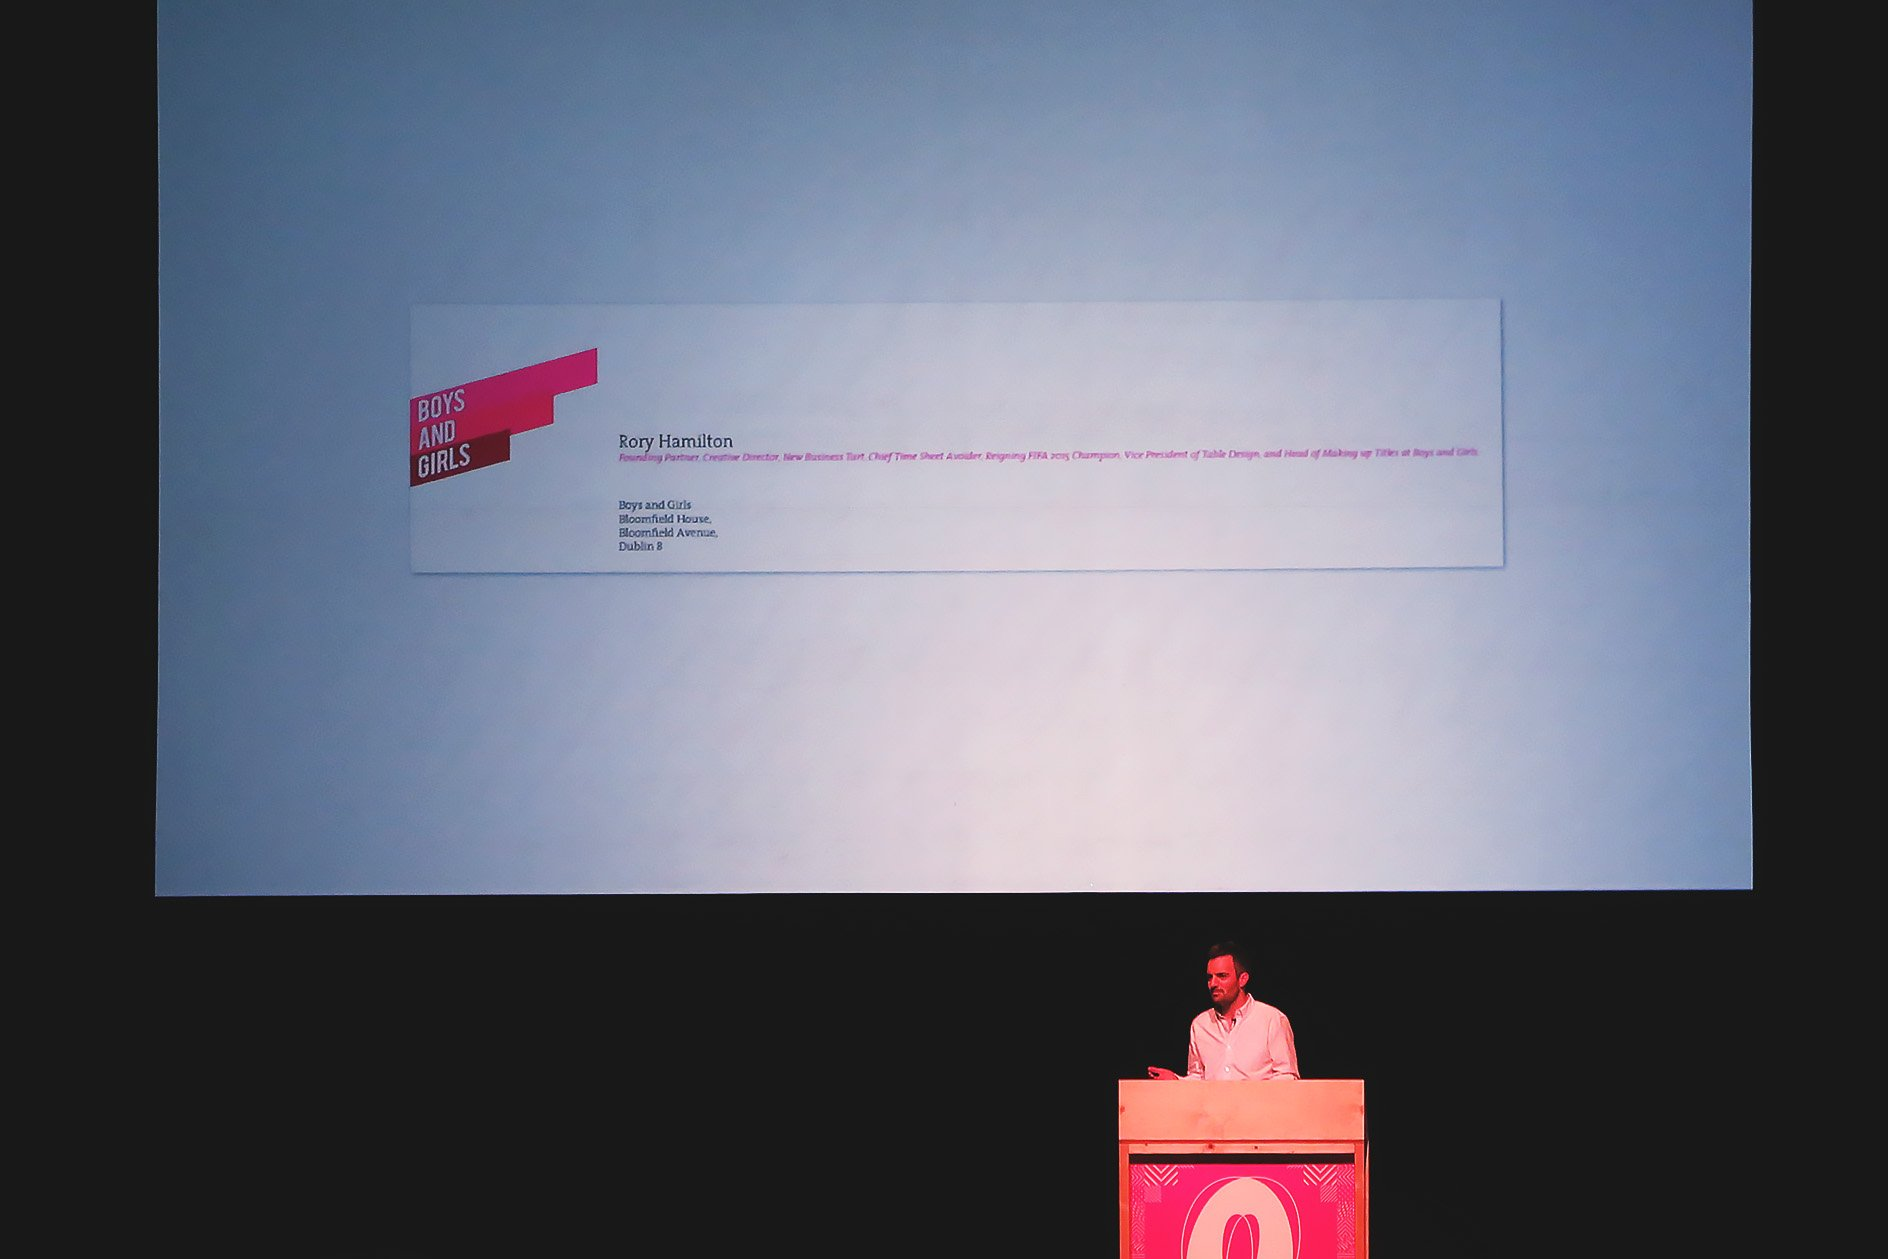 Boys and Girls at OFFSET 2015 – Rory's Business Card